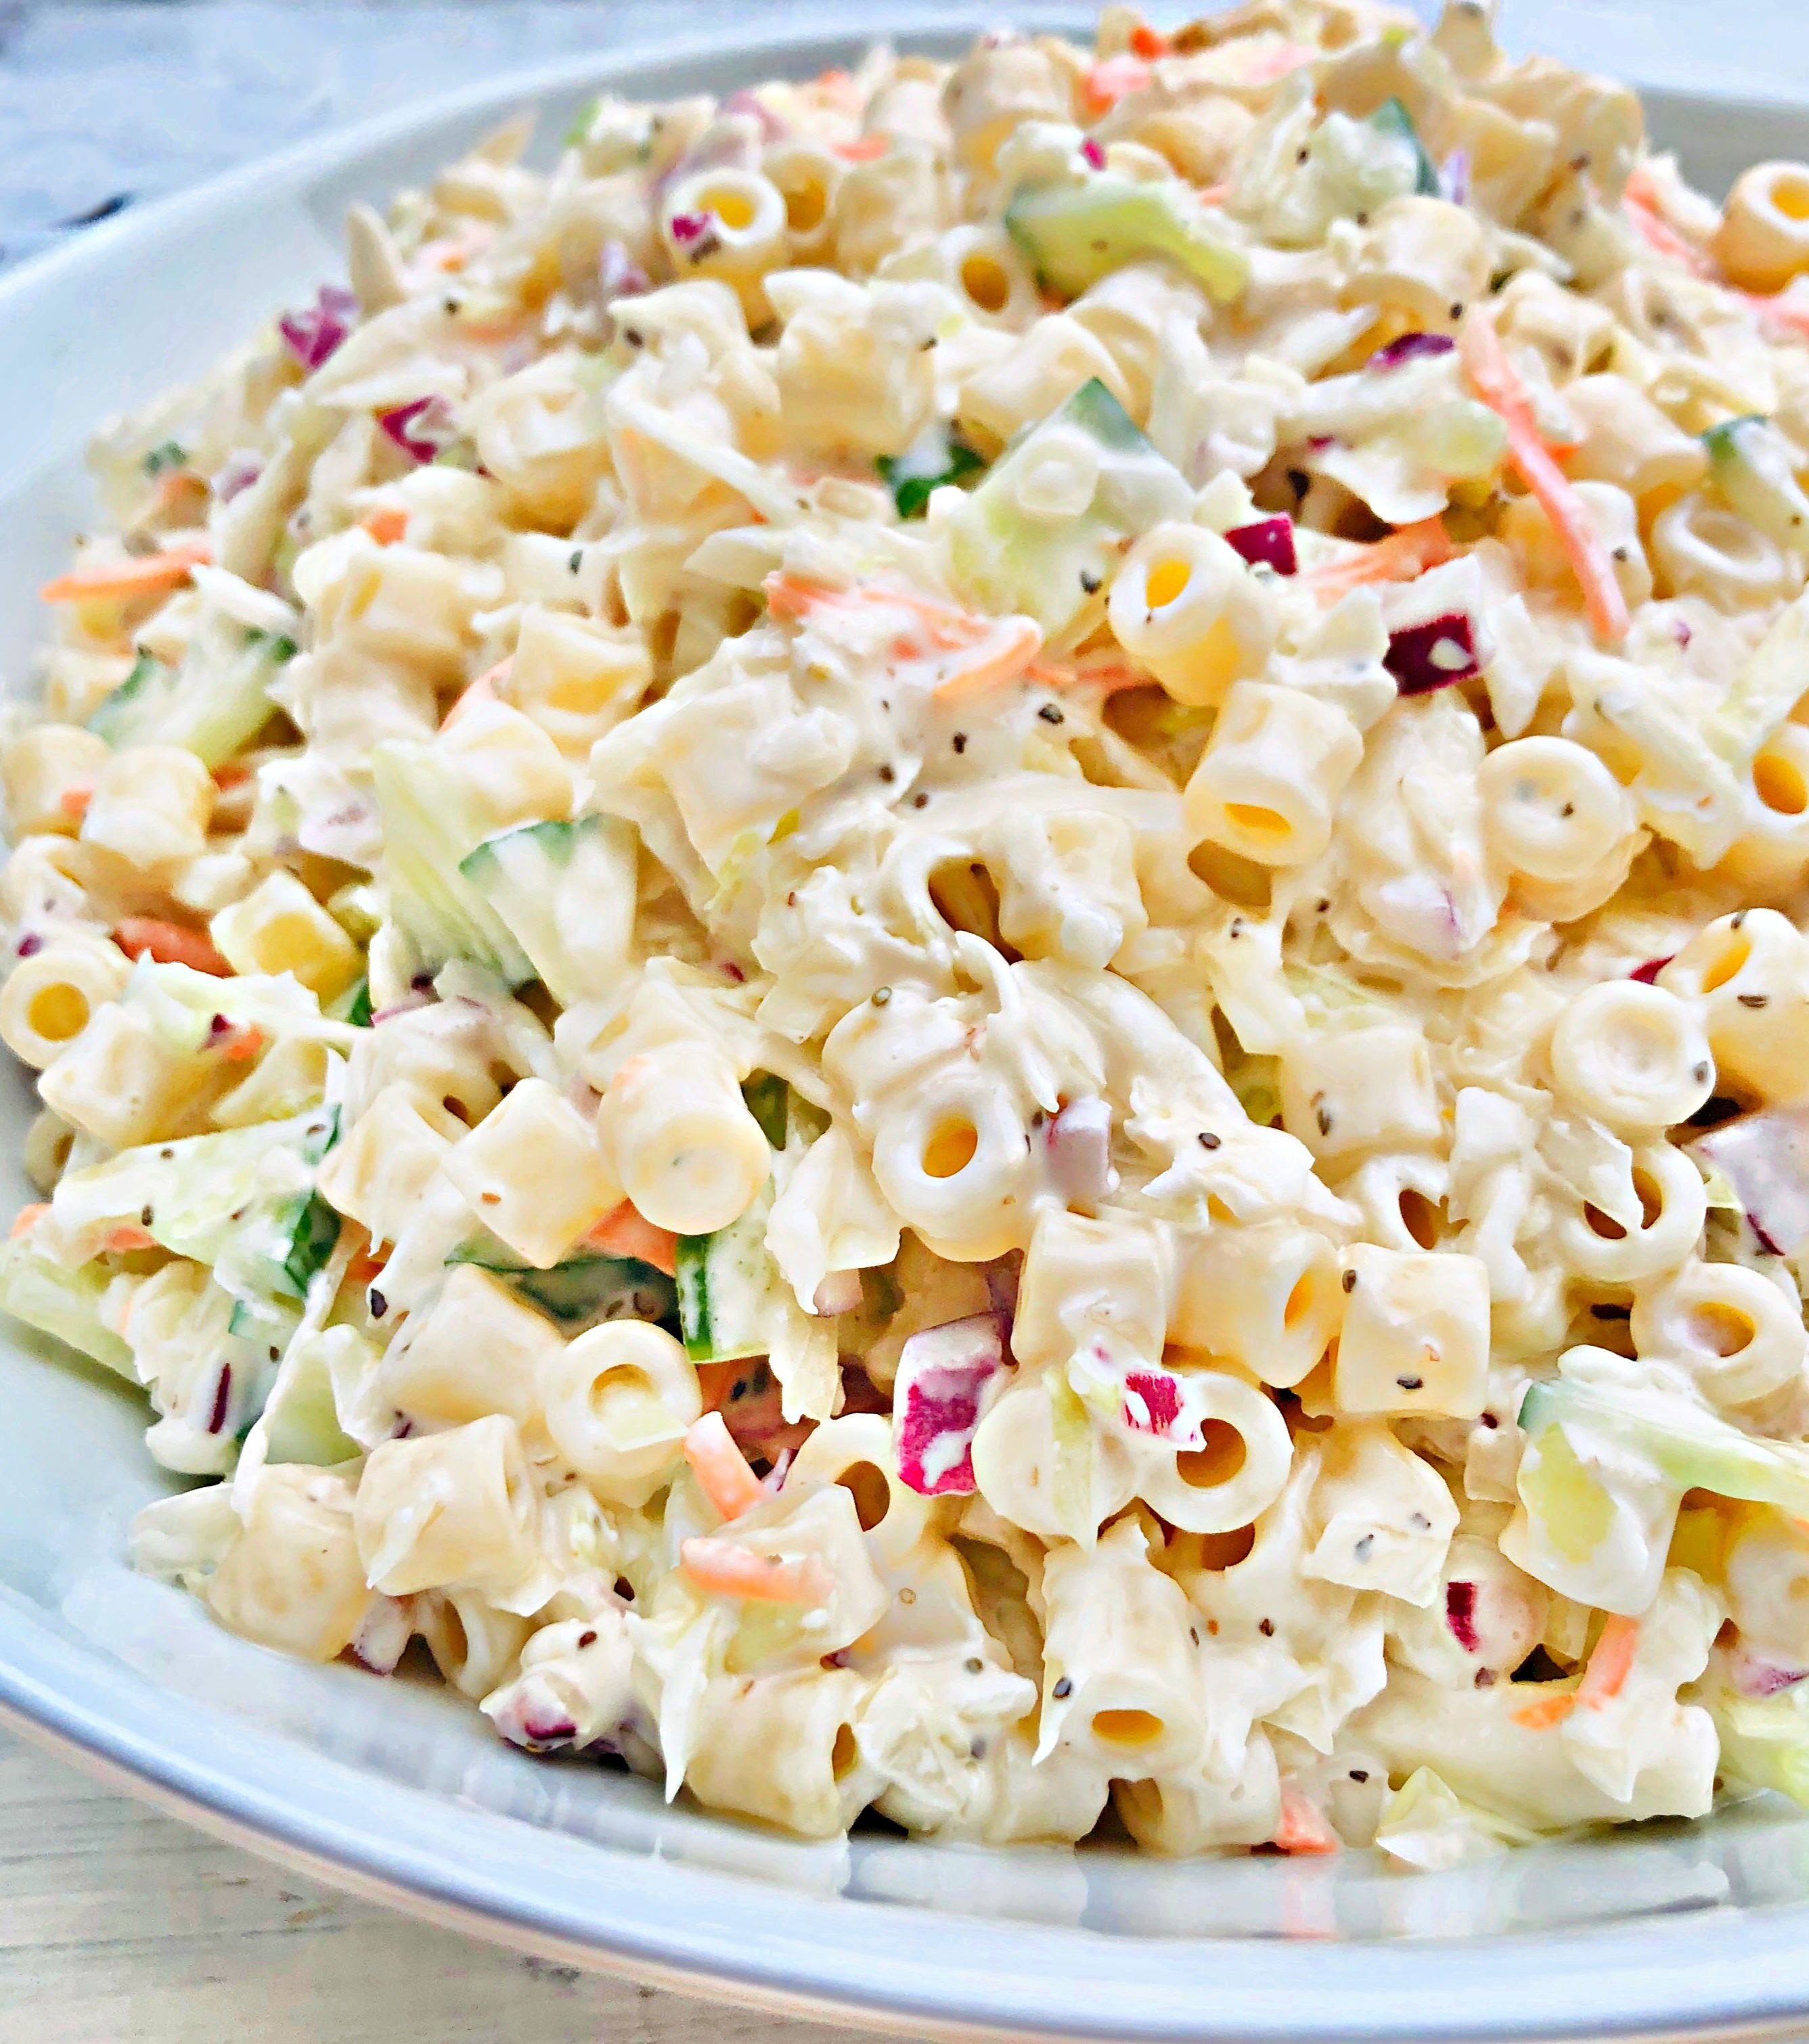 Coleslaw Pasta Salad -An easy, make-ahead side dish recipe perfect for backyard barbecues, potlucks, and holiday gatherings! via @thiswifecooks